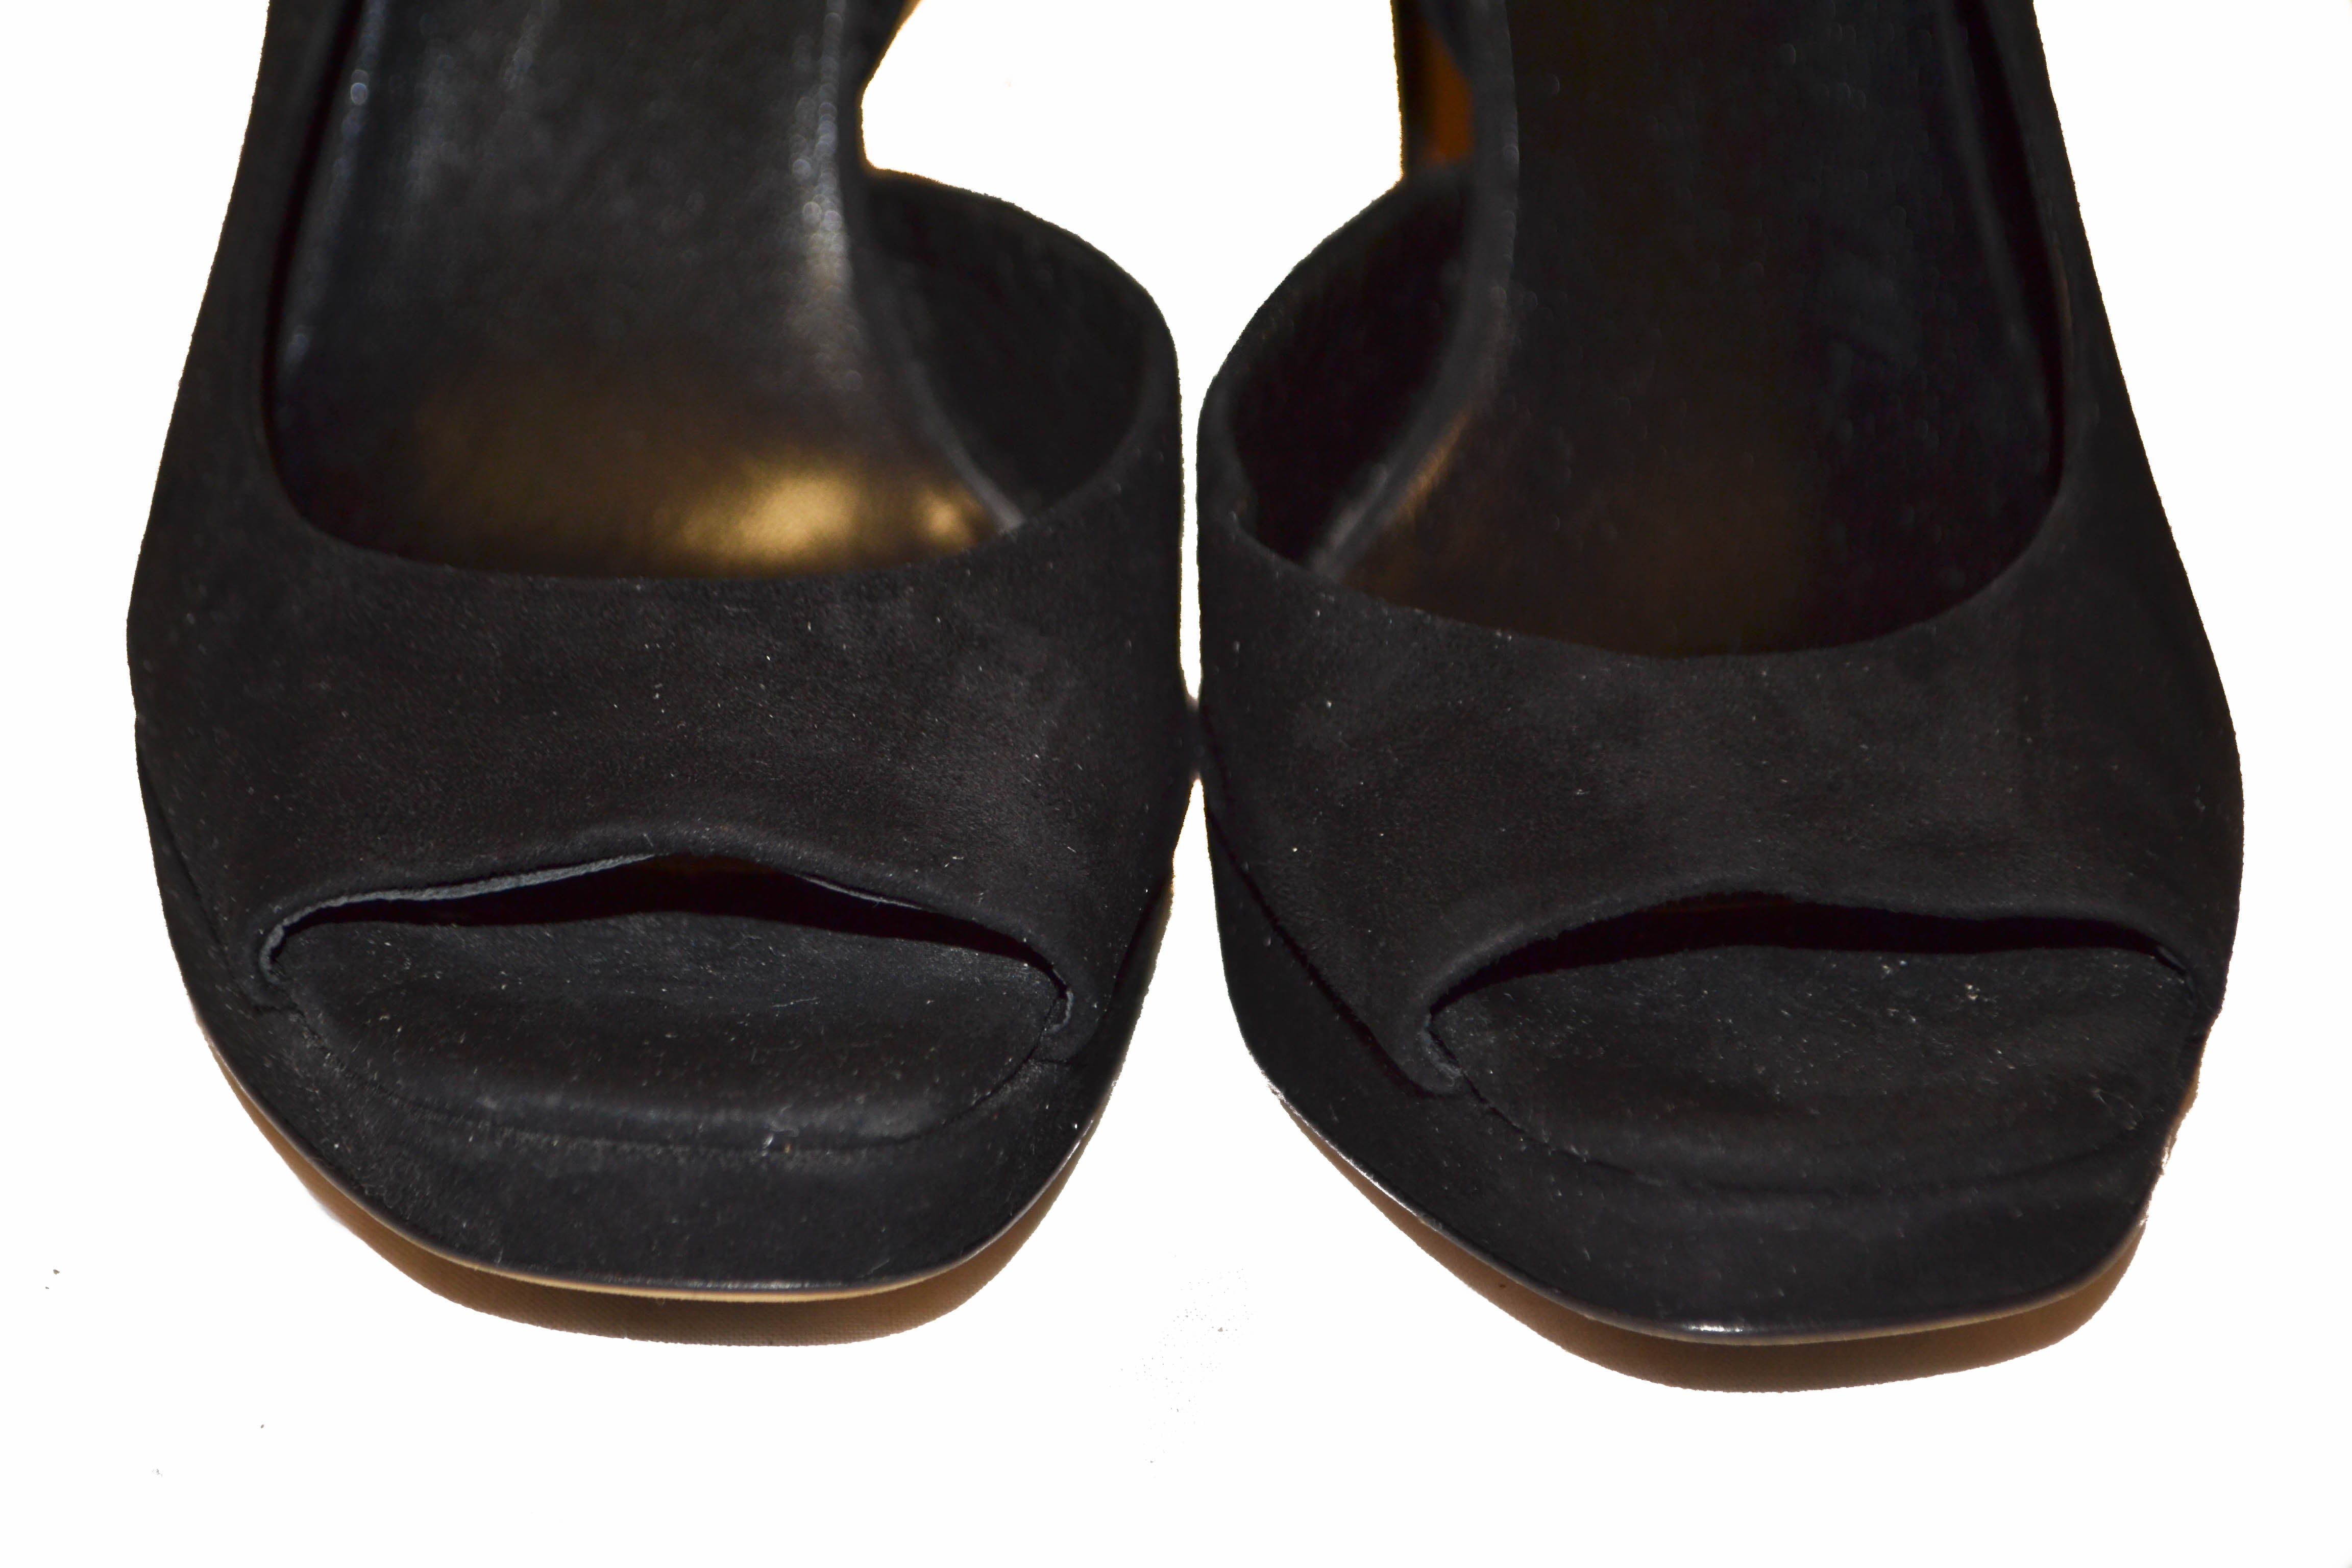 Authentic Miu Miu Black Suede Leather Pumps Shoes - Size 37.5